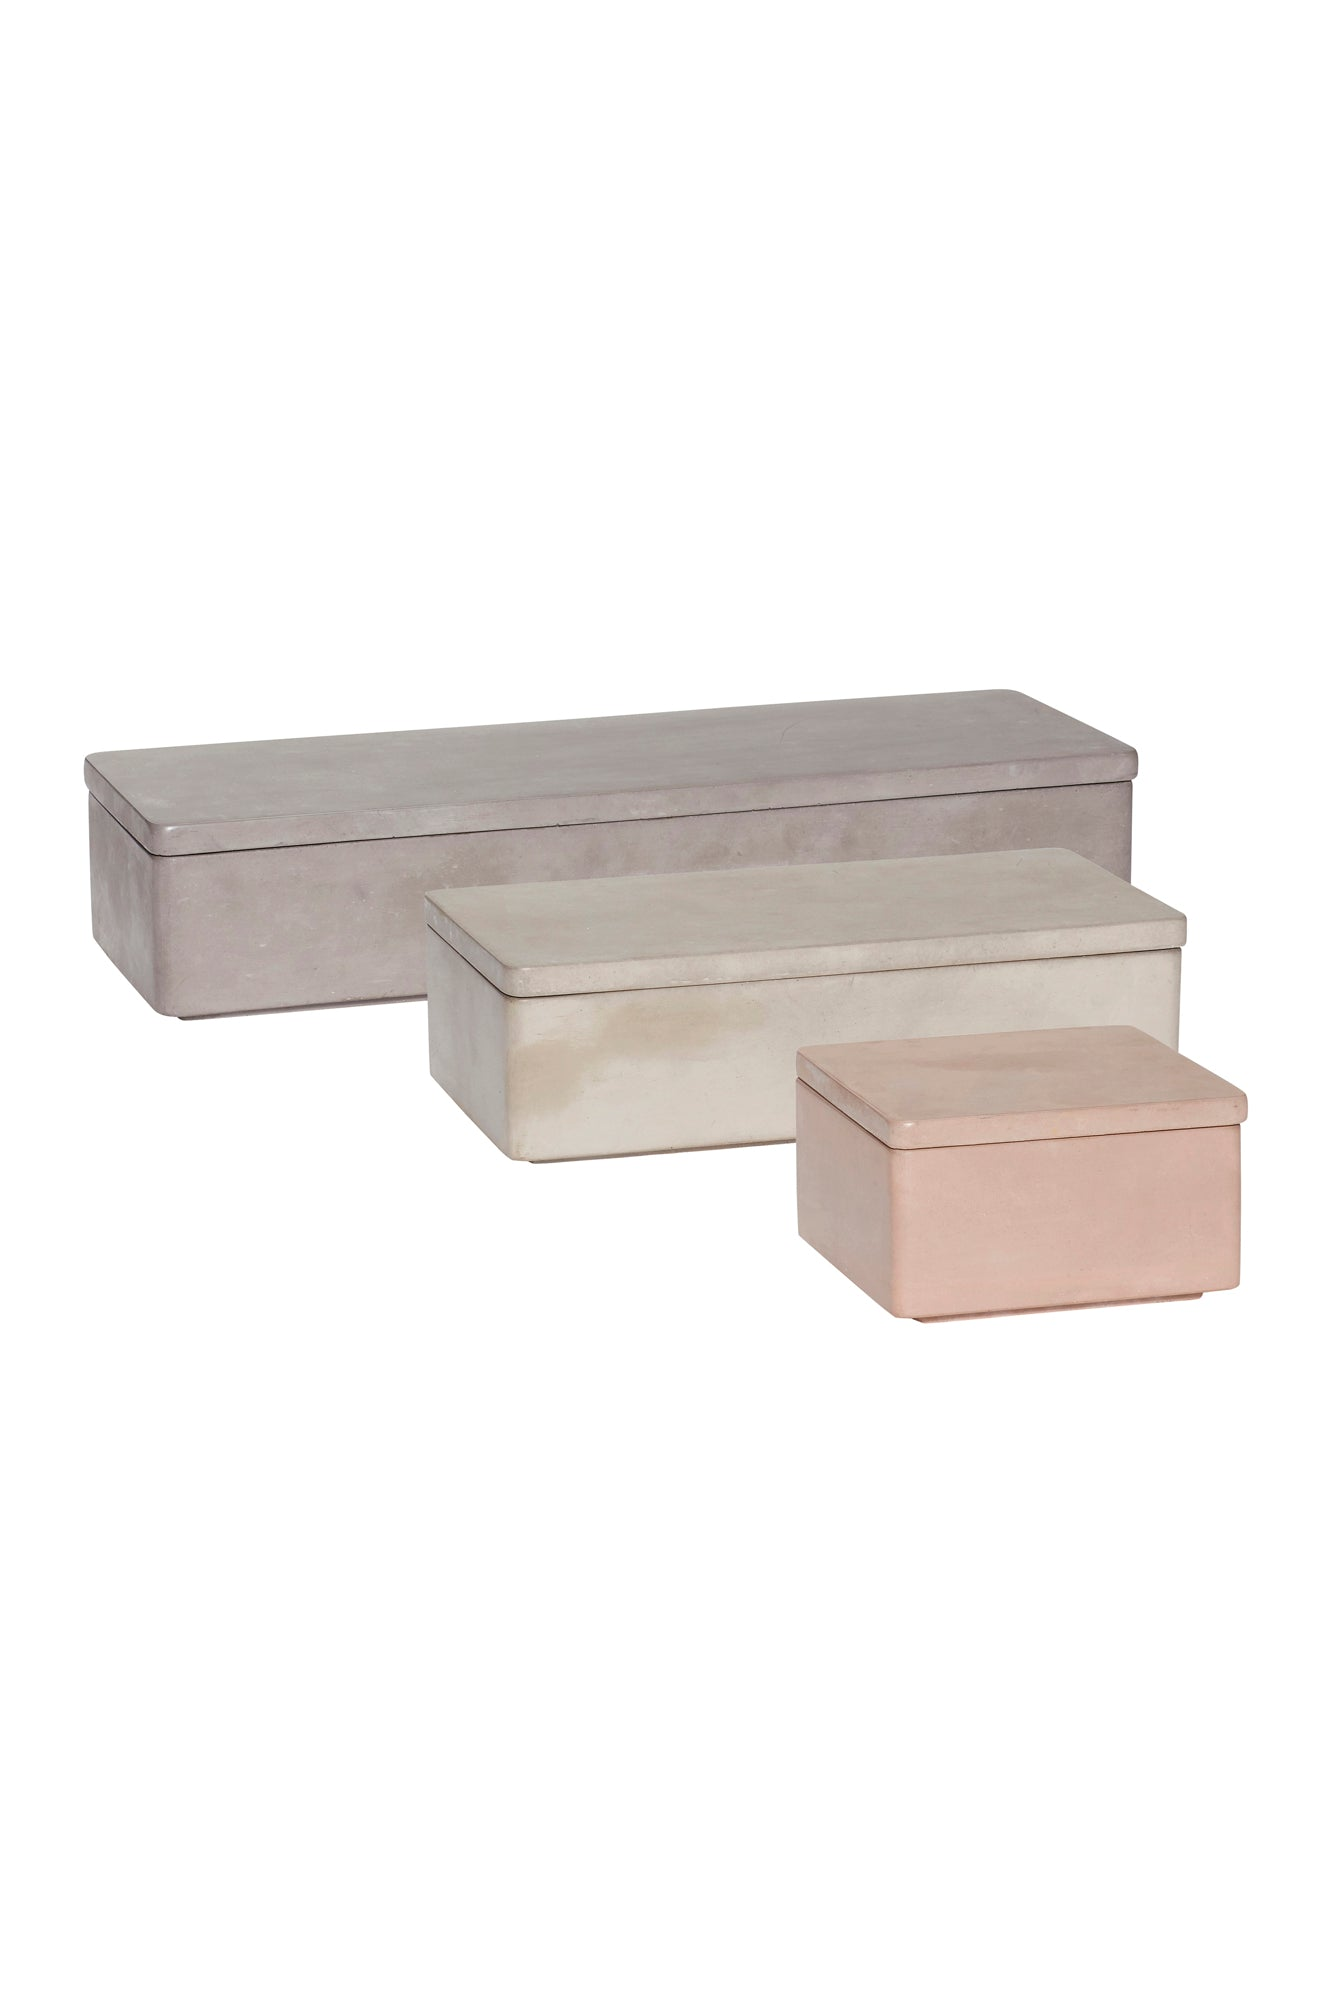 Concrete Storage Boxes, Vase, Hübsch - 3LittlePicks